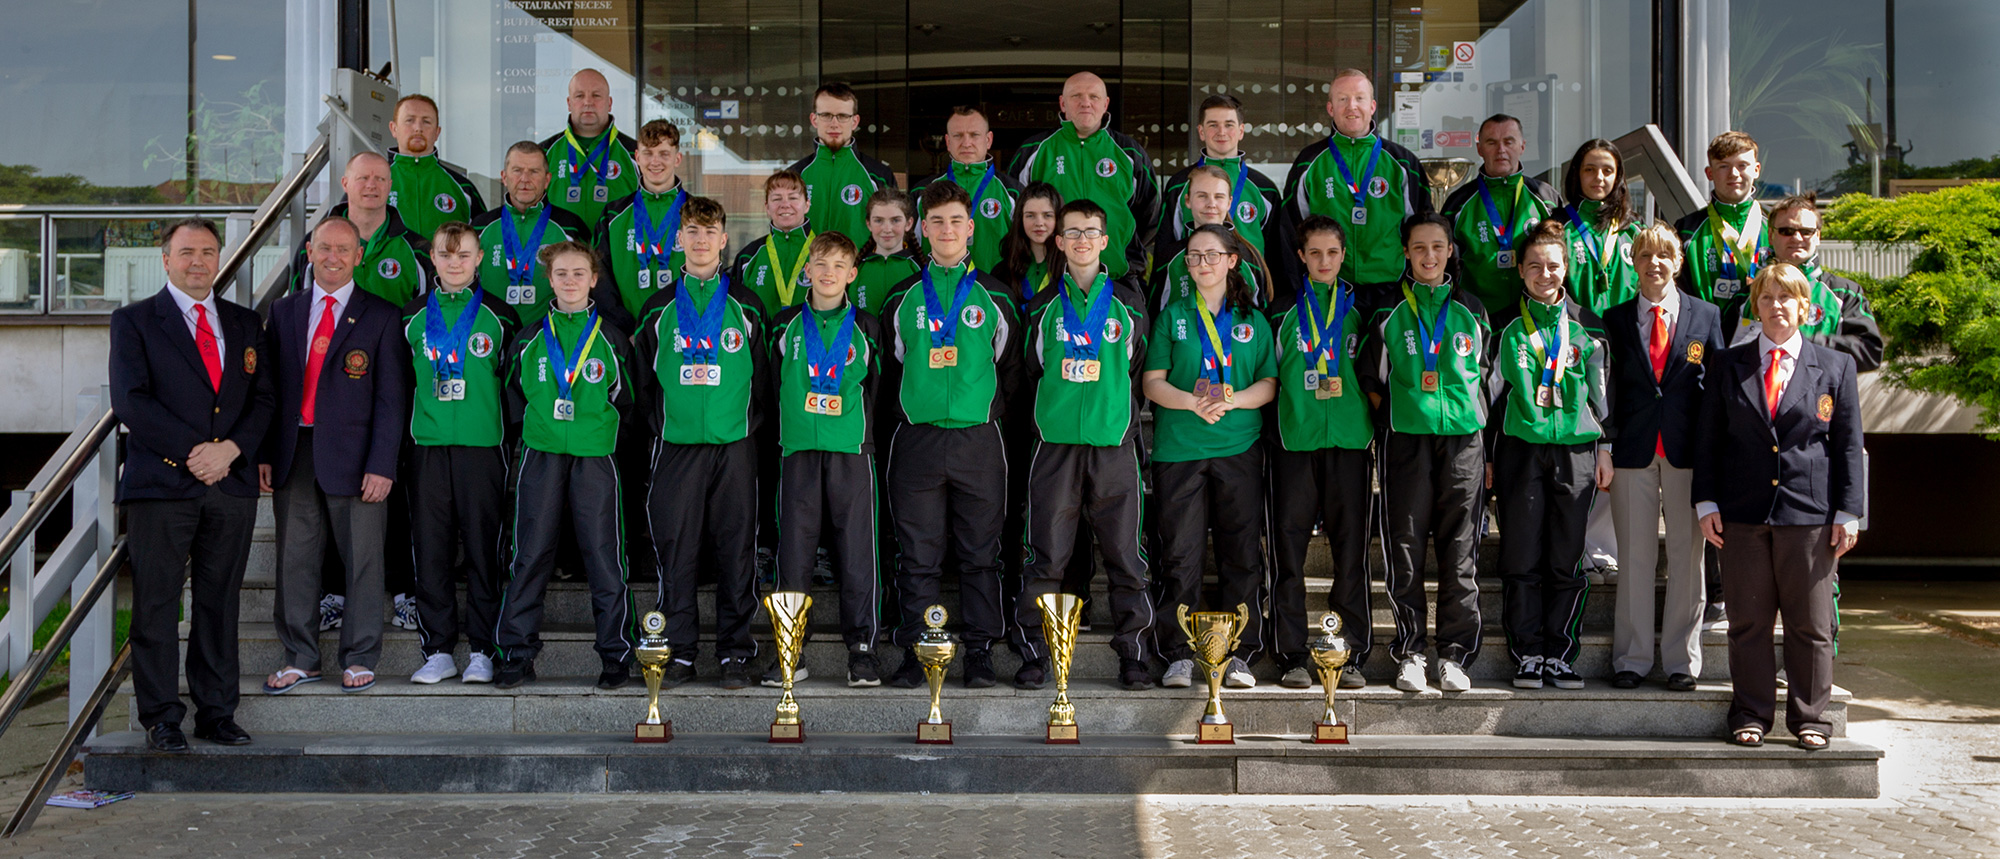 SKIF Ireland win 57 medals at Hradec Kralove SKIF Grand Prix